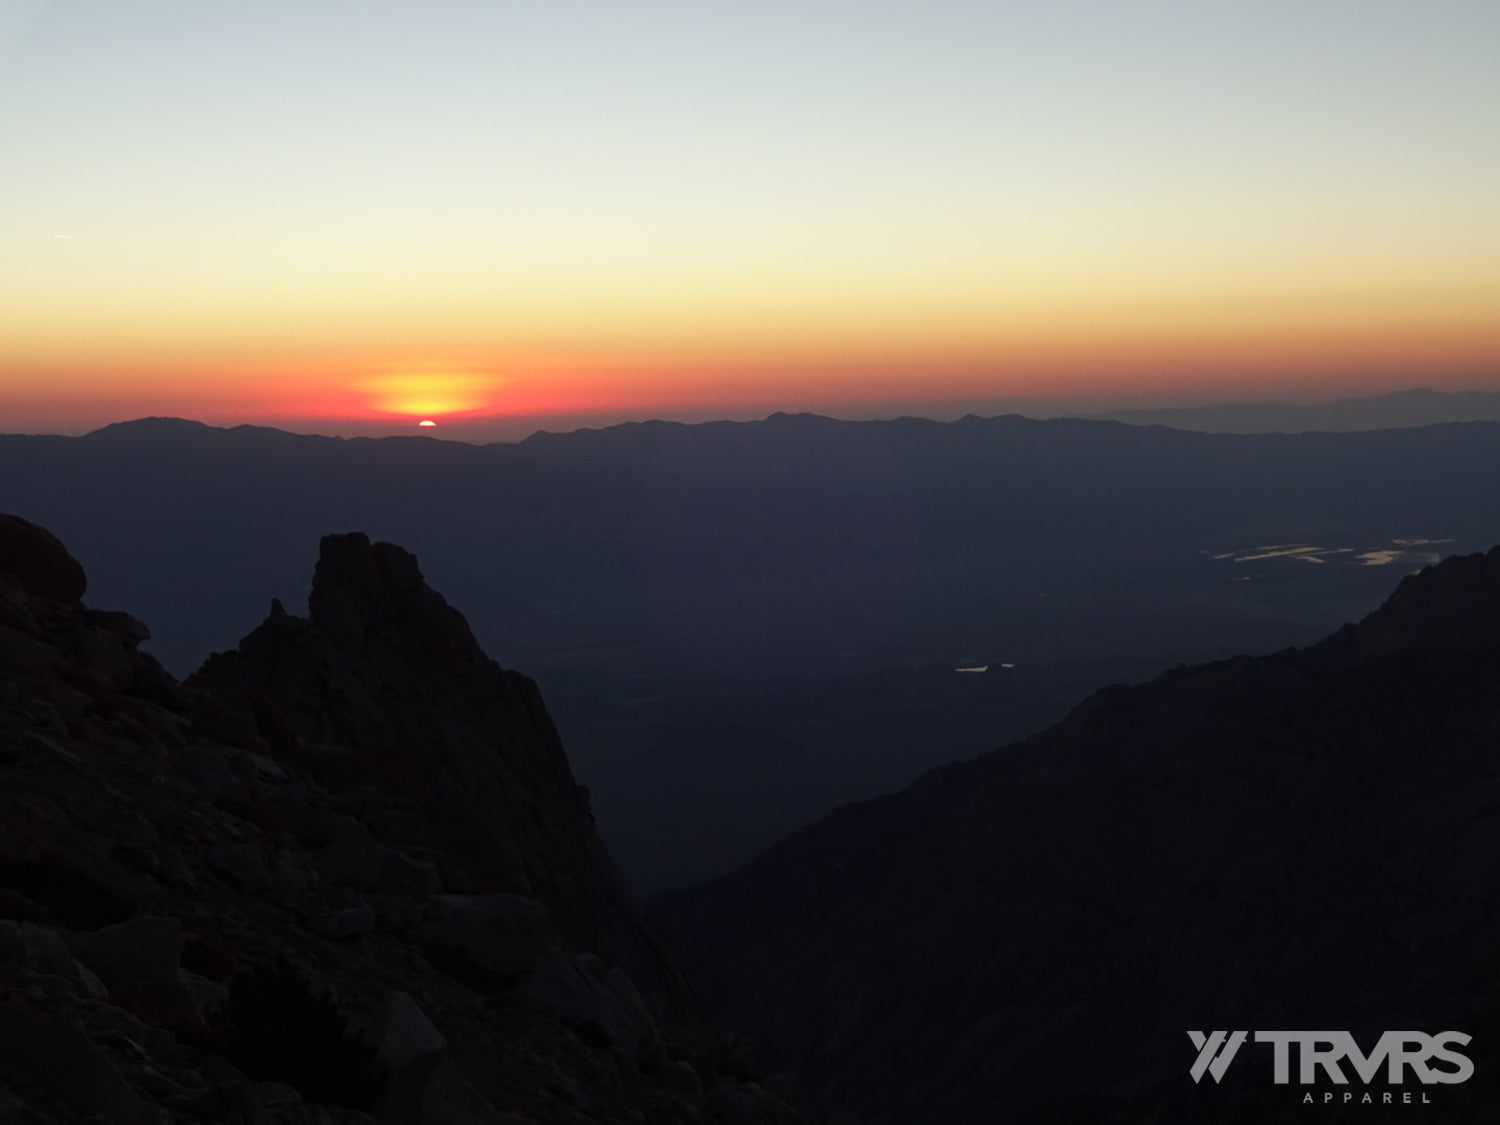 Sunrise at 12000 feet North Screen Field from Upper Boyscout Lake | TRVRS APPAREL